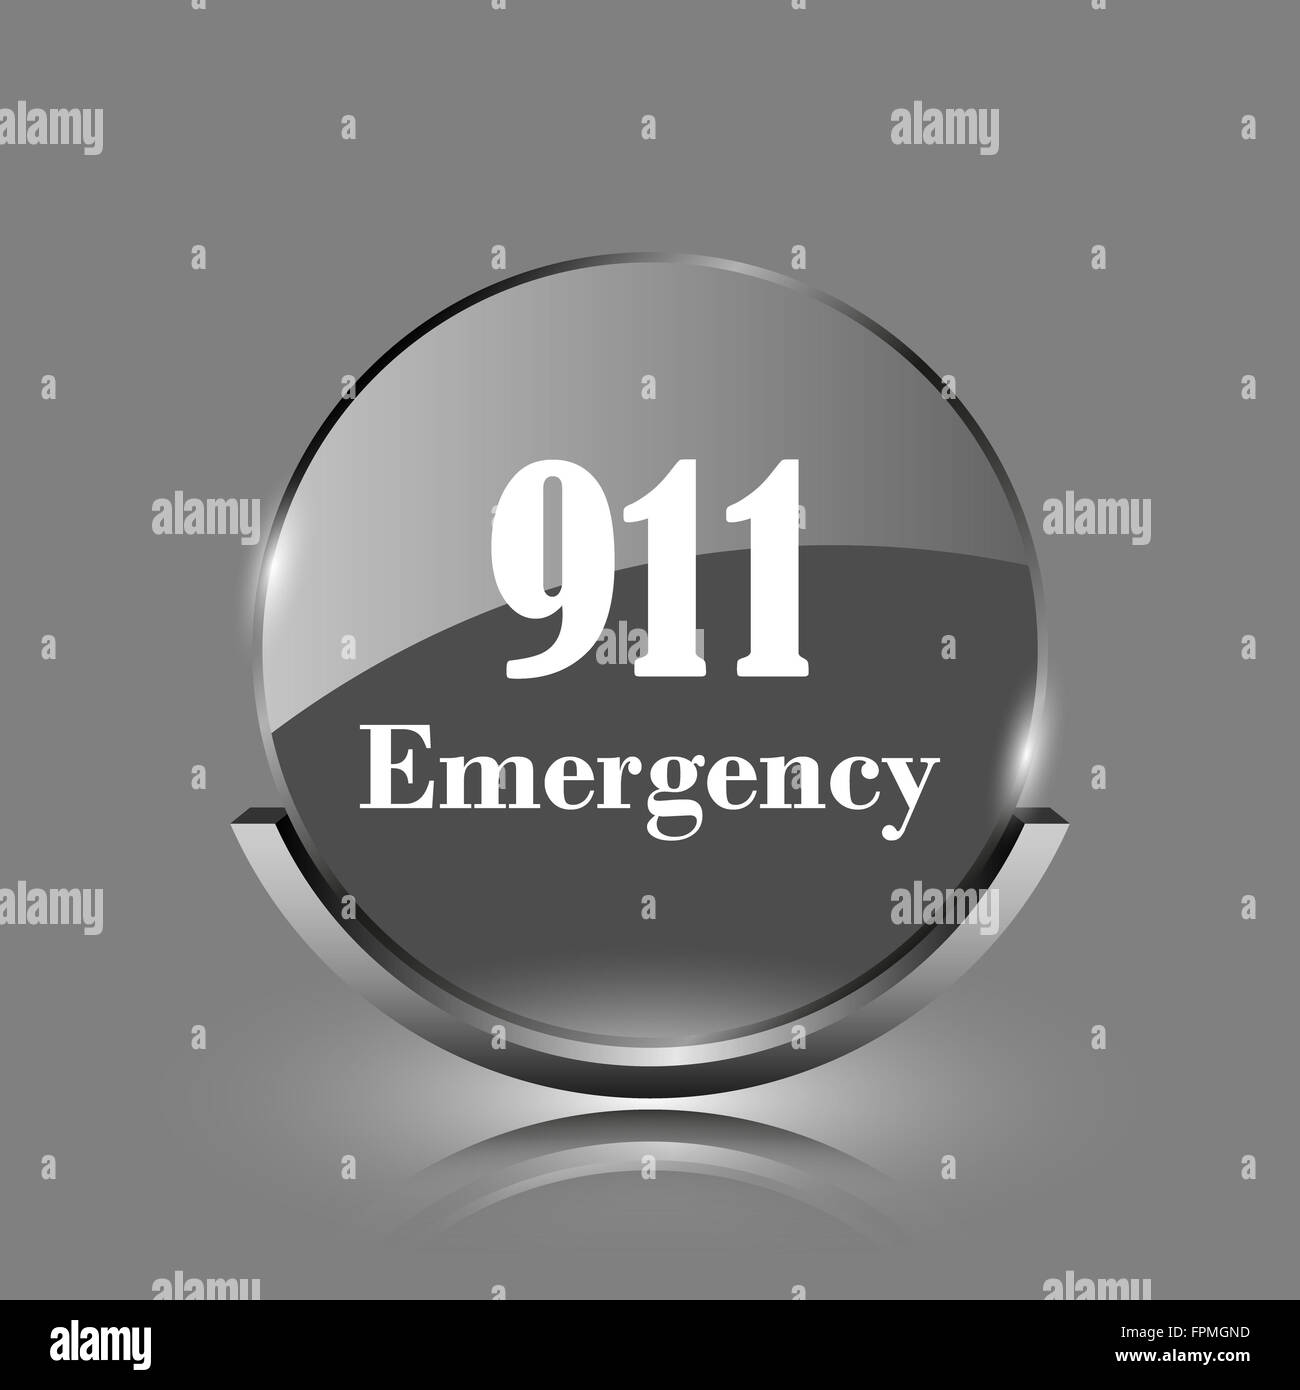 911 Emergency icon. Shiny glossy internet button on grey background. - Stock Image